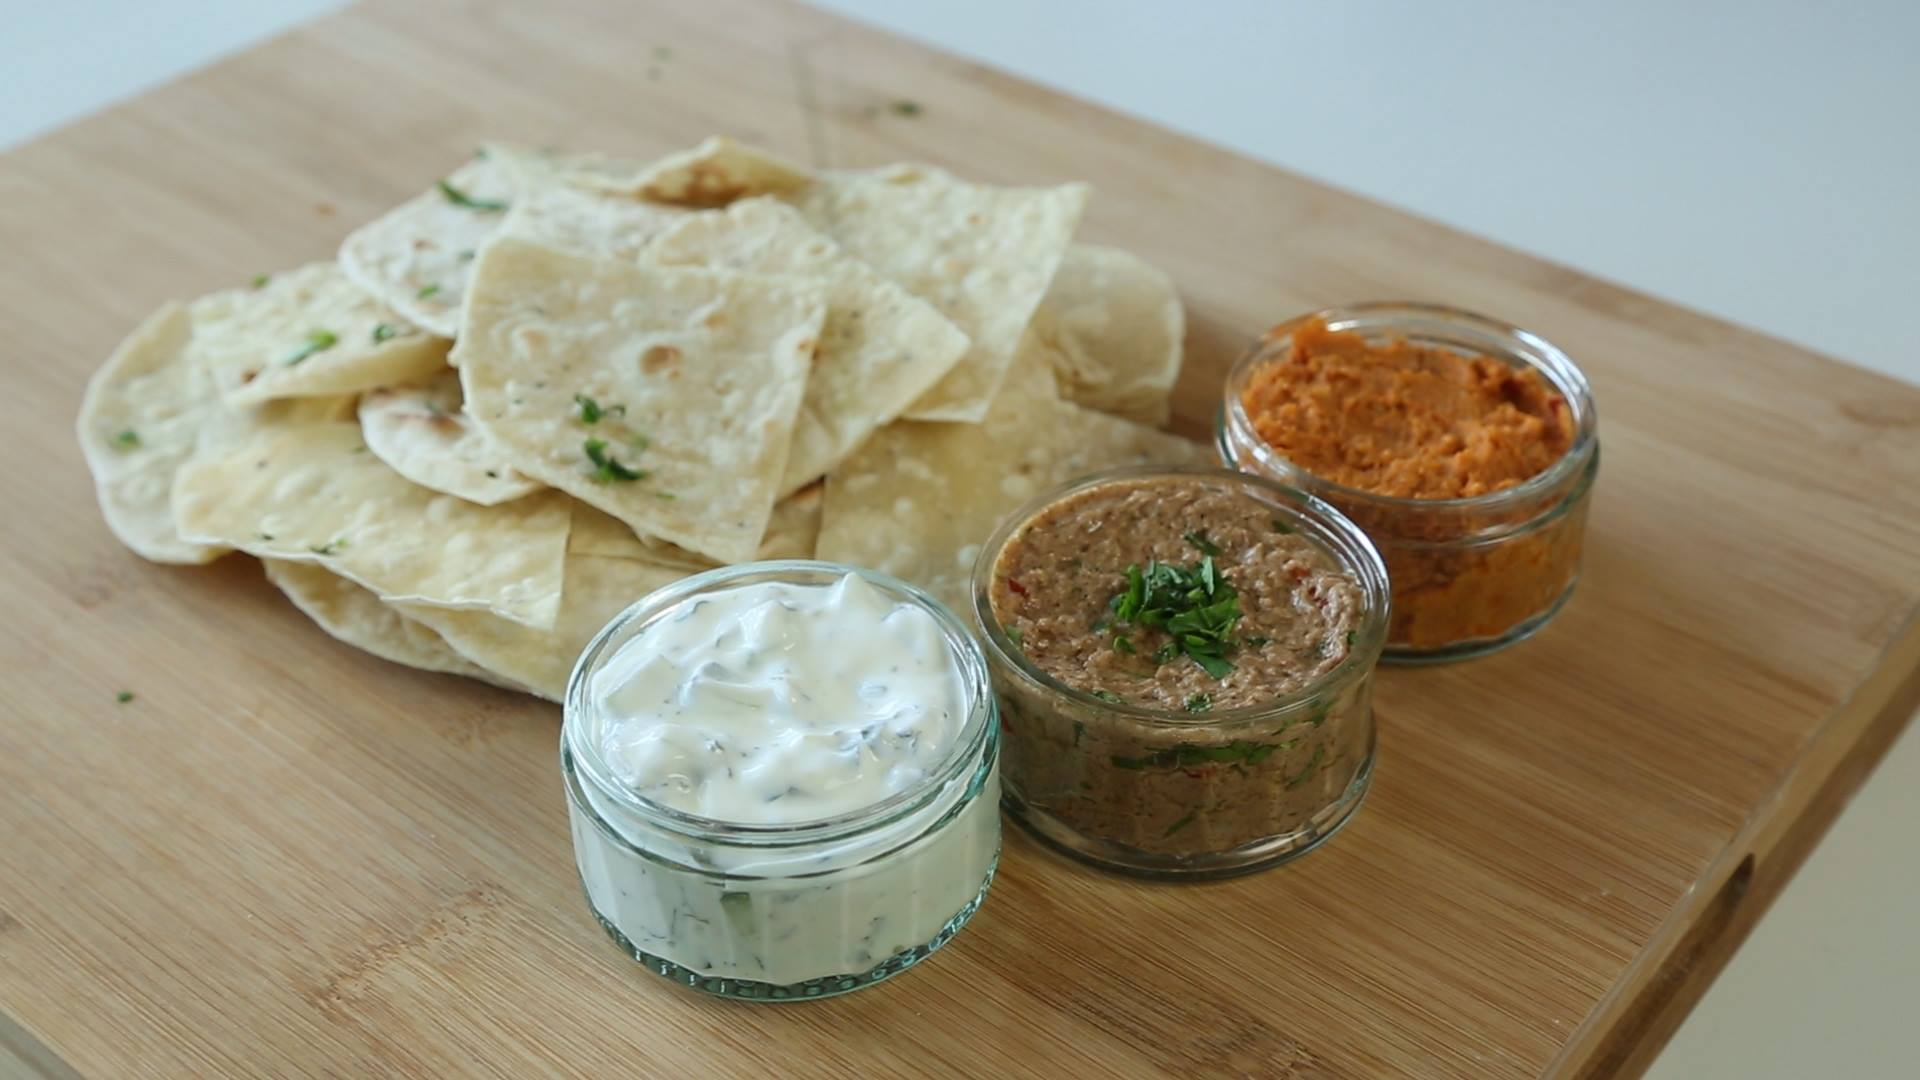 Heres How You Make Flatbreads And A Trio Of Dips 13091632 10153482970455598 680472542 o